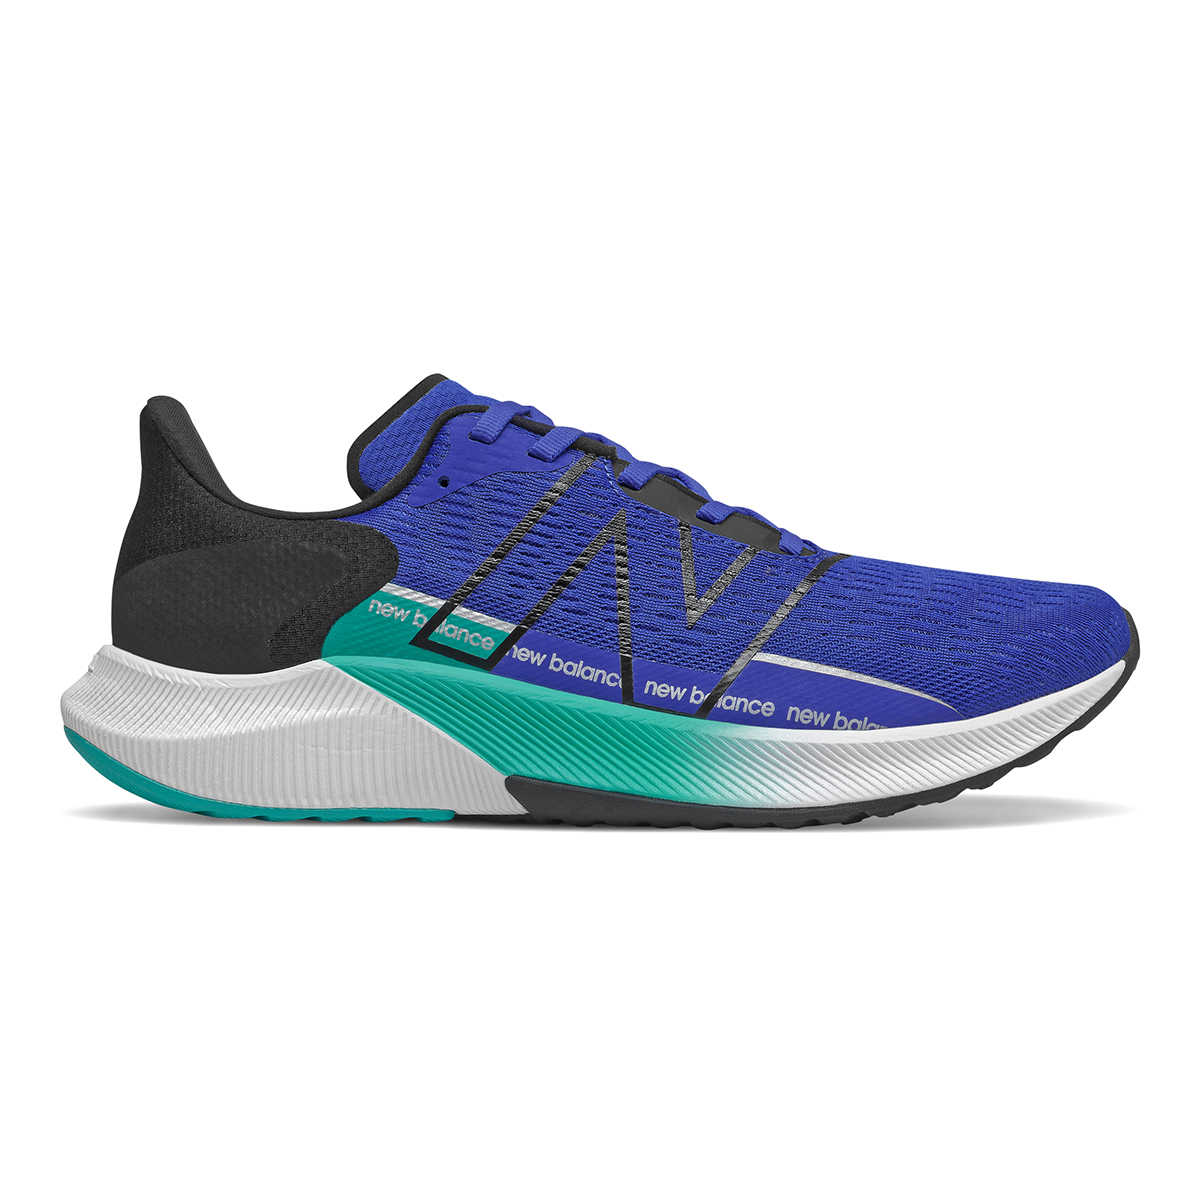 Men's New Balance Fuelcell Propel V2 Running Shoe, , large, image 1